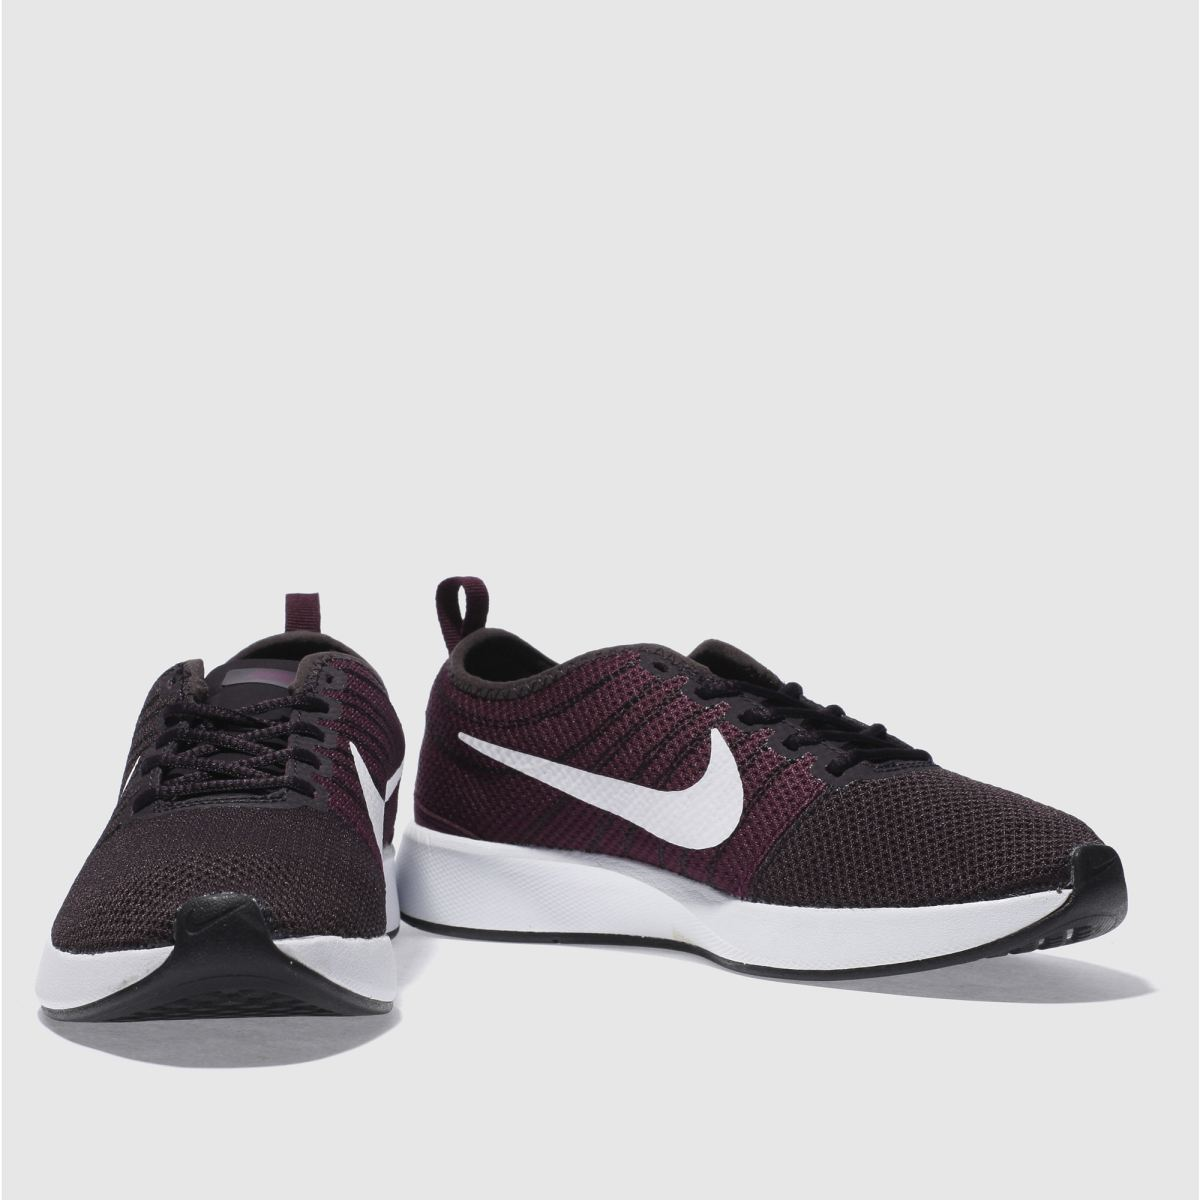 Nike dual tone dark purple trainers